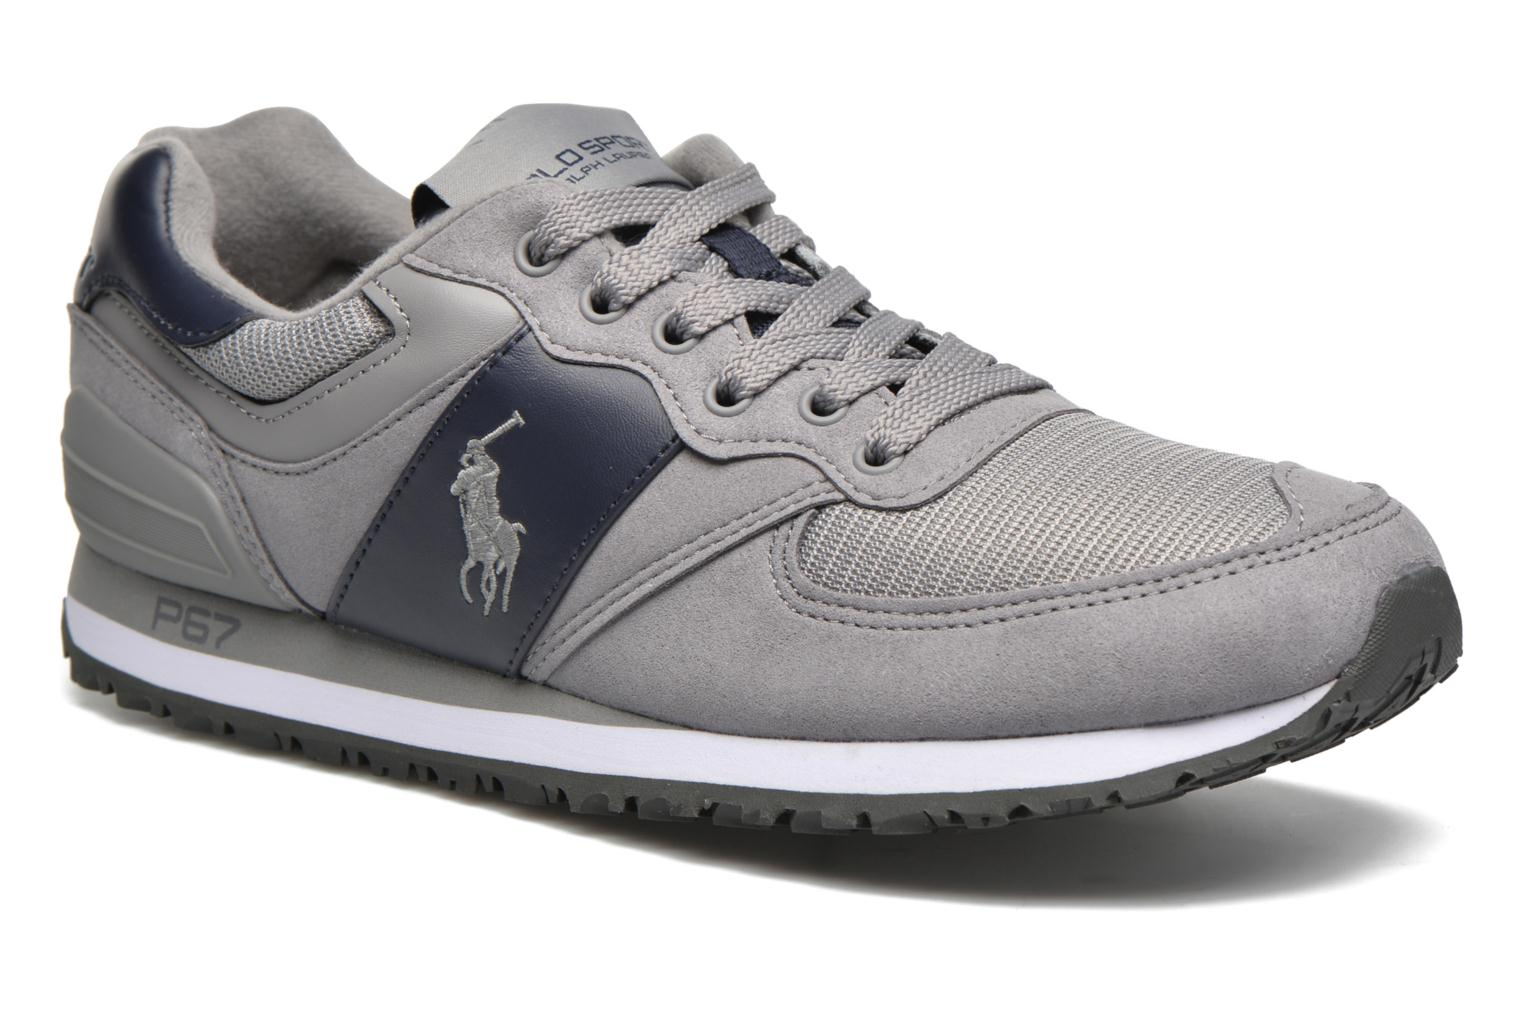 Slaton Pony Basic Grey / Newport Navy